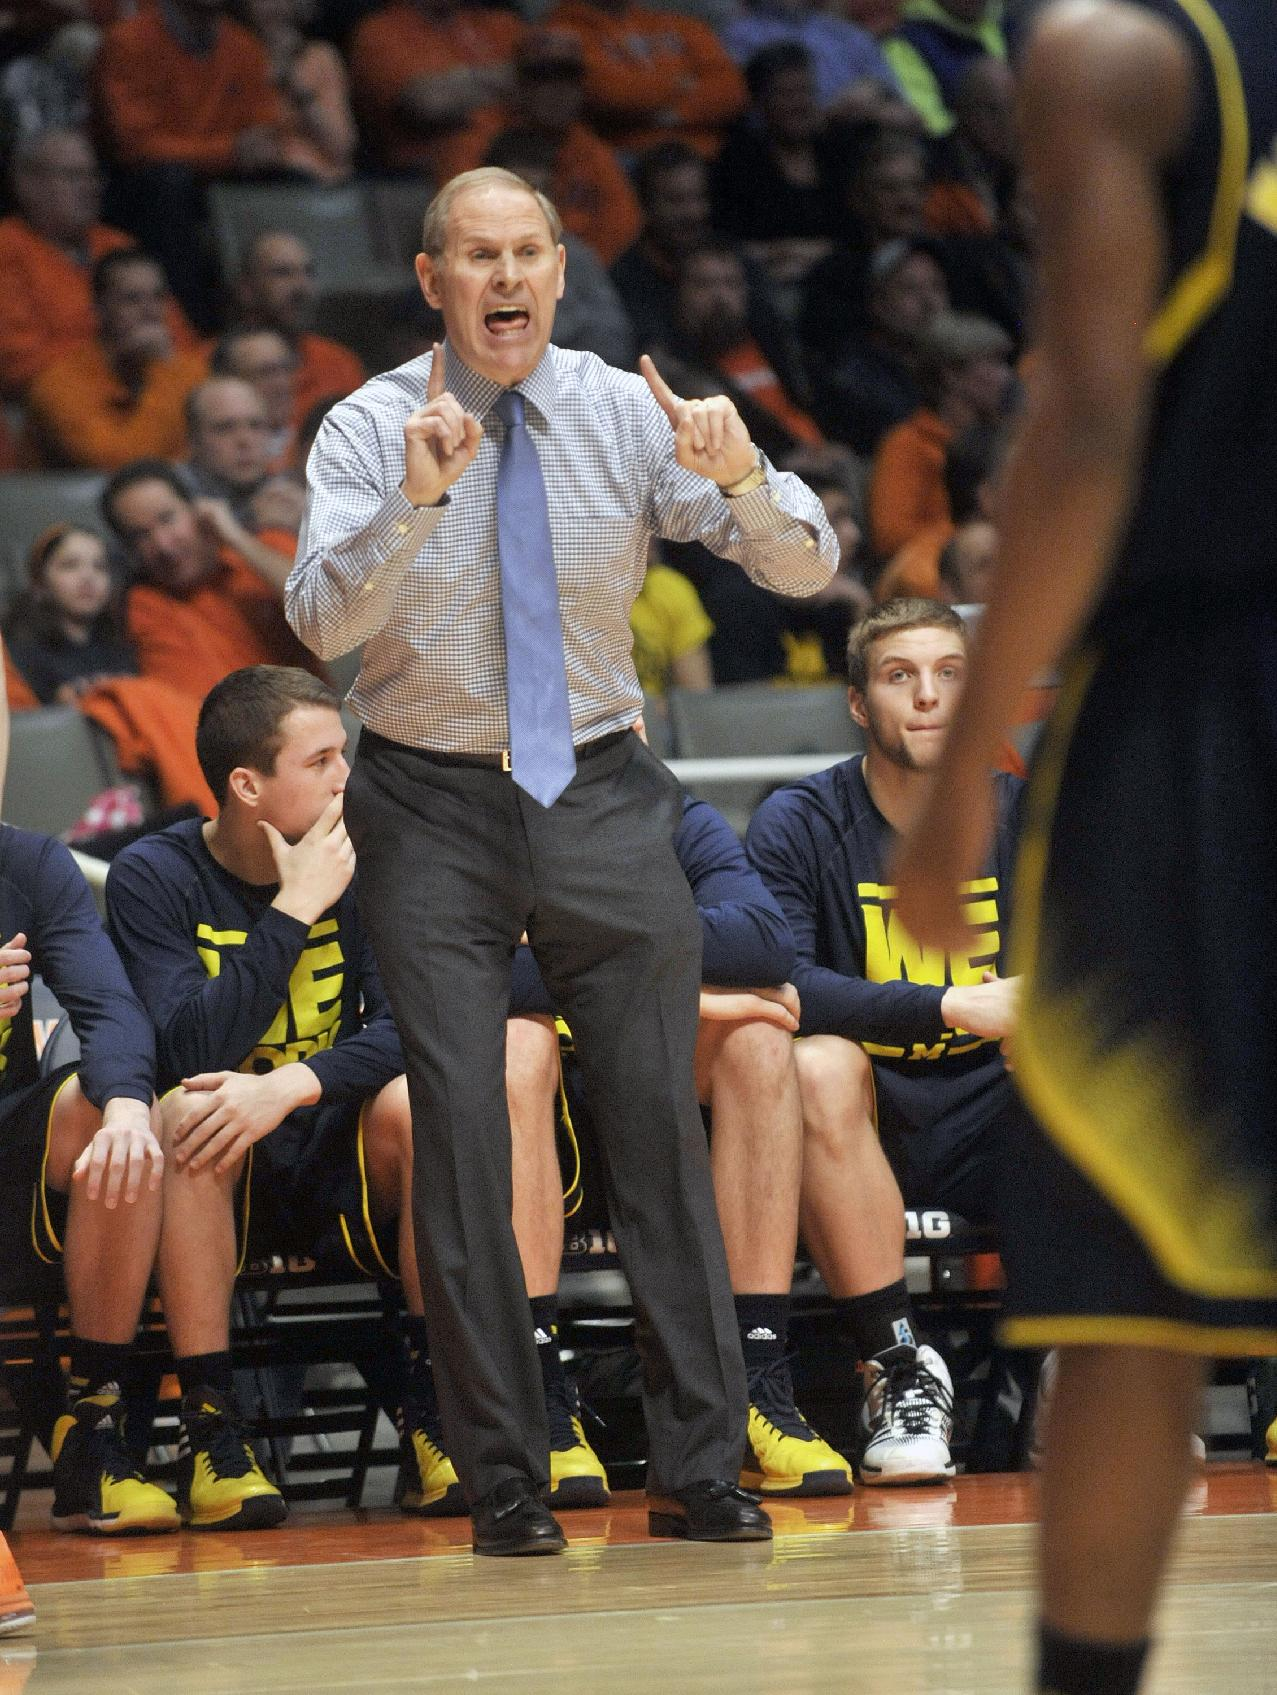 Michigan coach John Beilein shouts from the bench during the first half of Michigan's NCAA college basketball game against Illinois on Tuesday, March 4, 2014, in Champaign, Ill